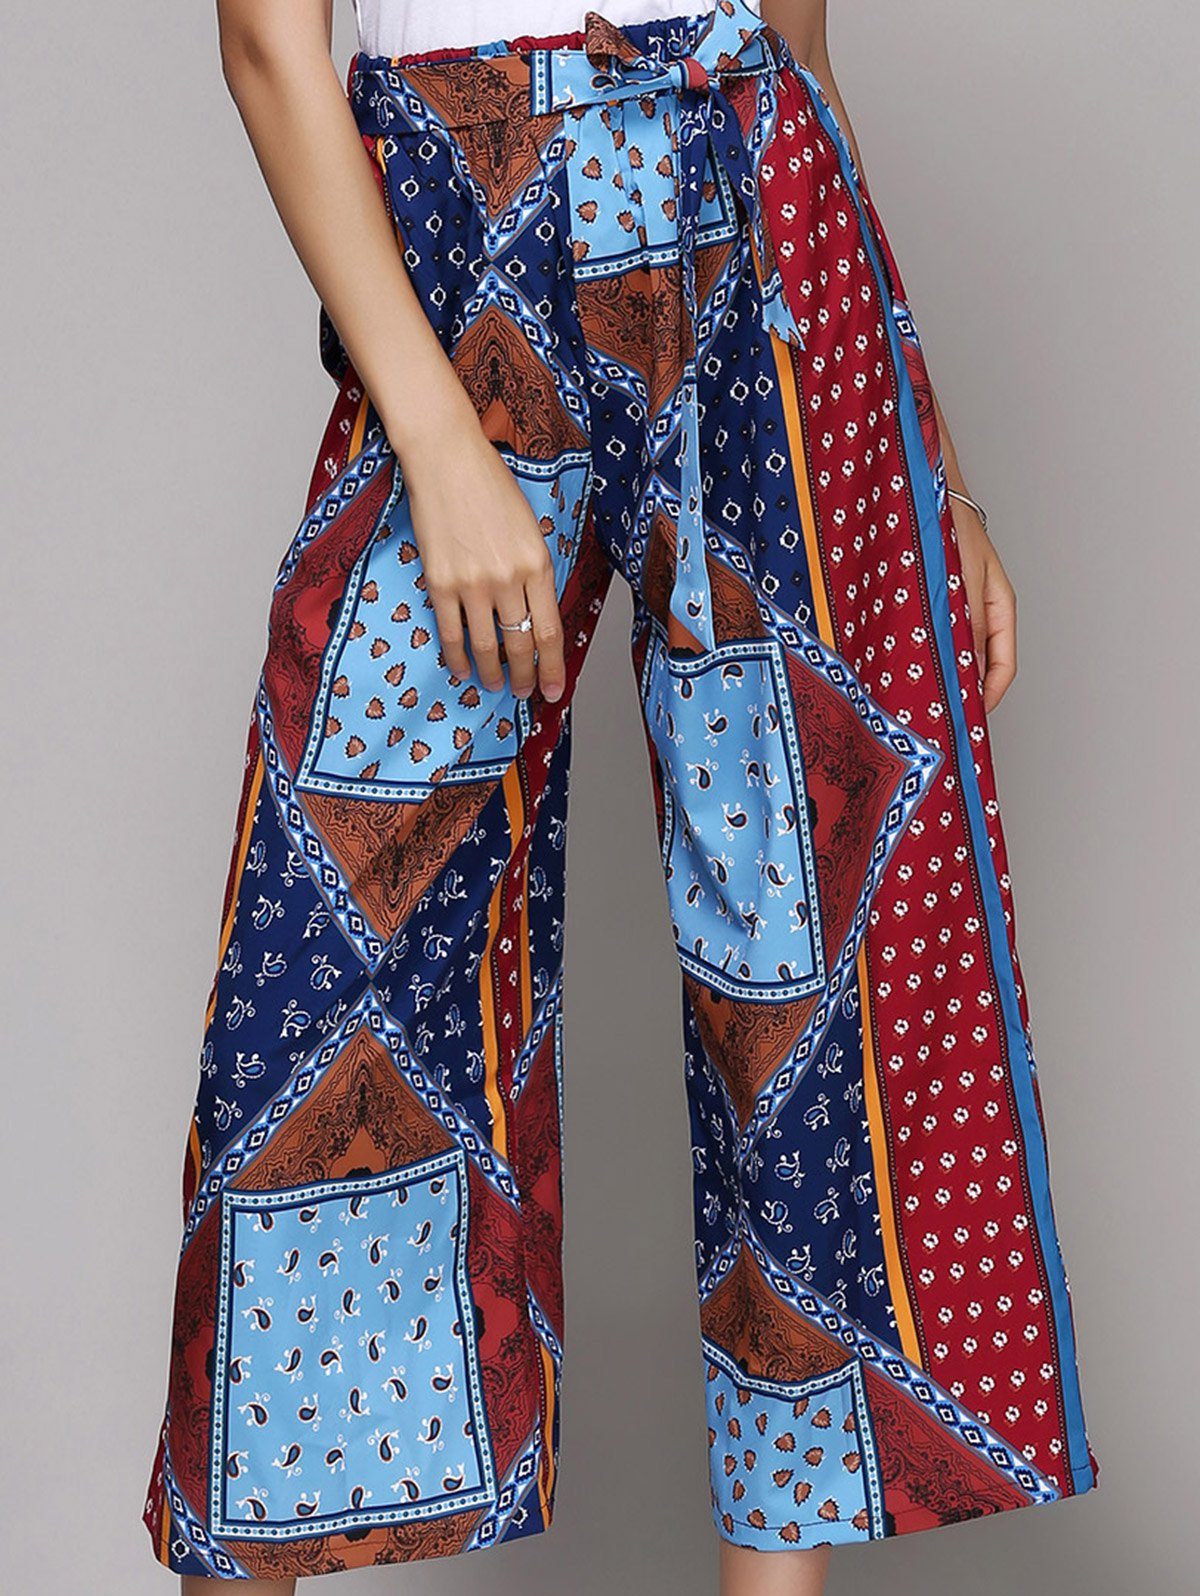 Stylish Belted Ethnic Print Palazzo Pants For Women - COLORMIX L